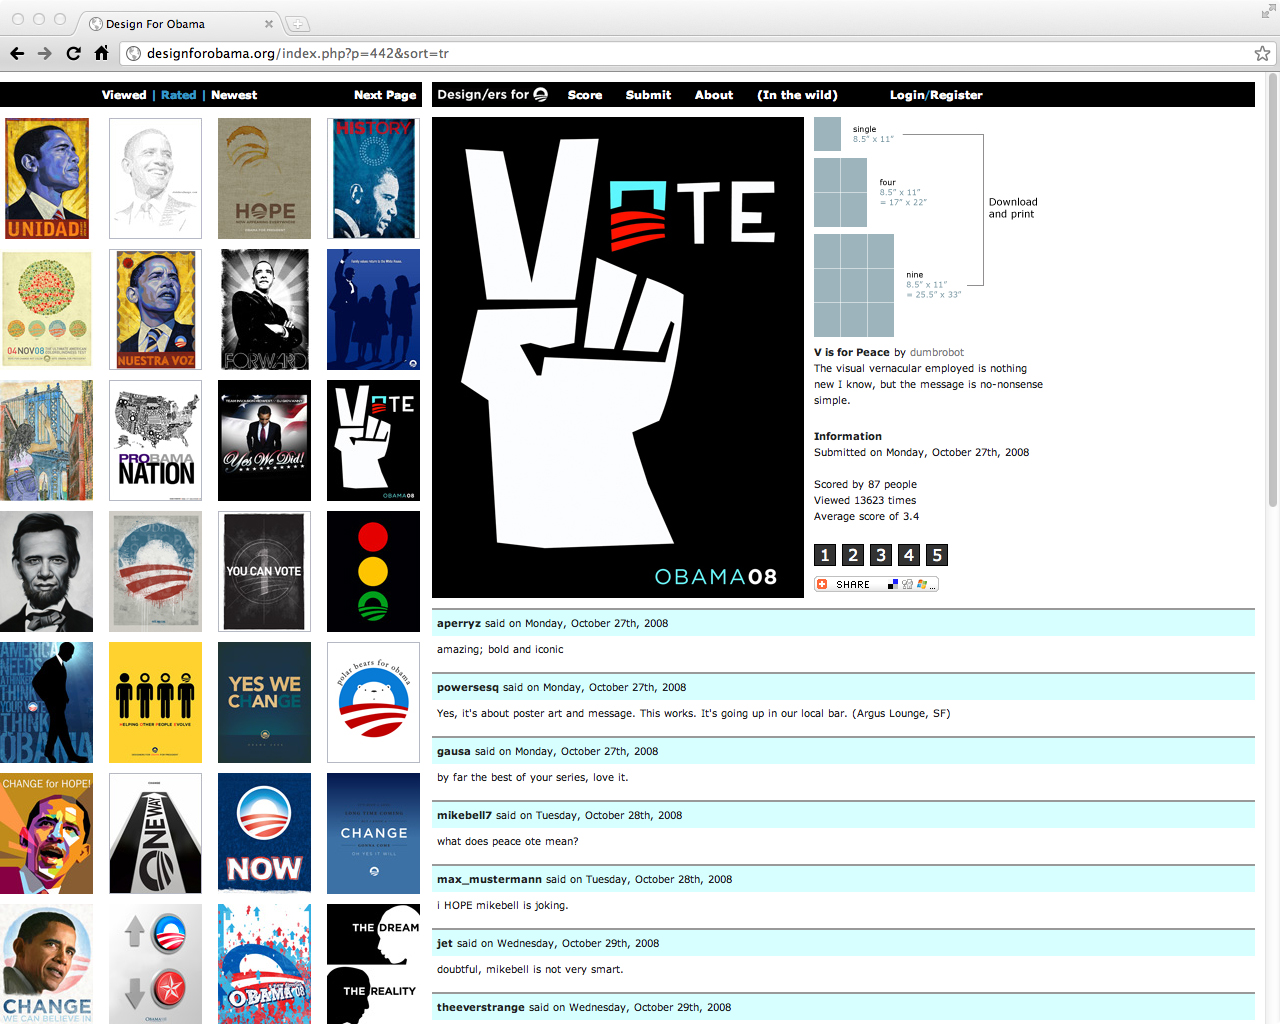 The original Design for Obama website which comprised of a big poster grid with the ability to upload and download poster submissions.